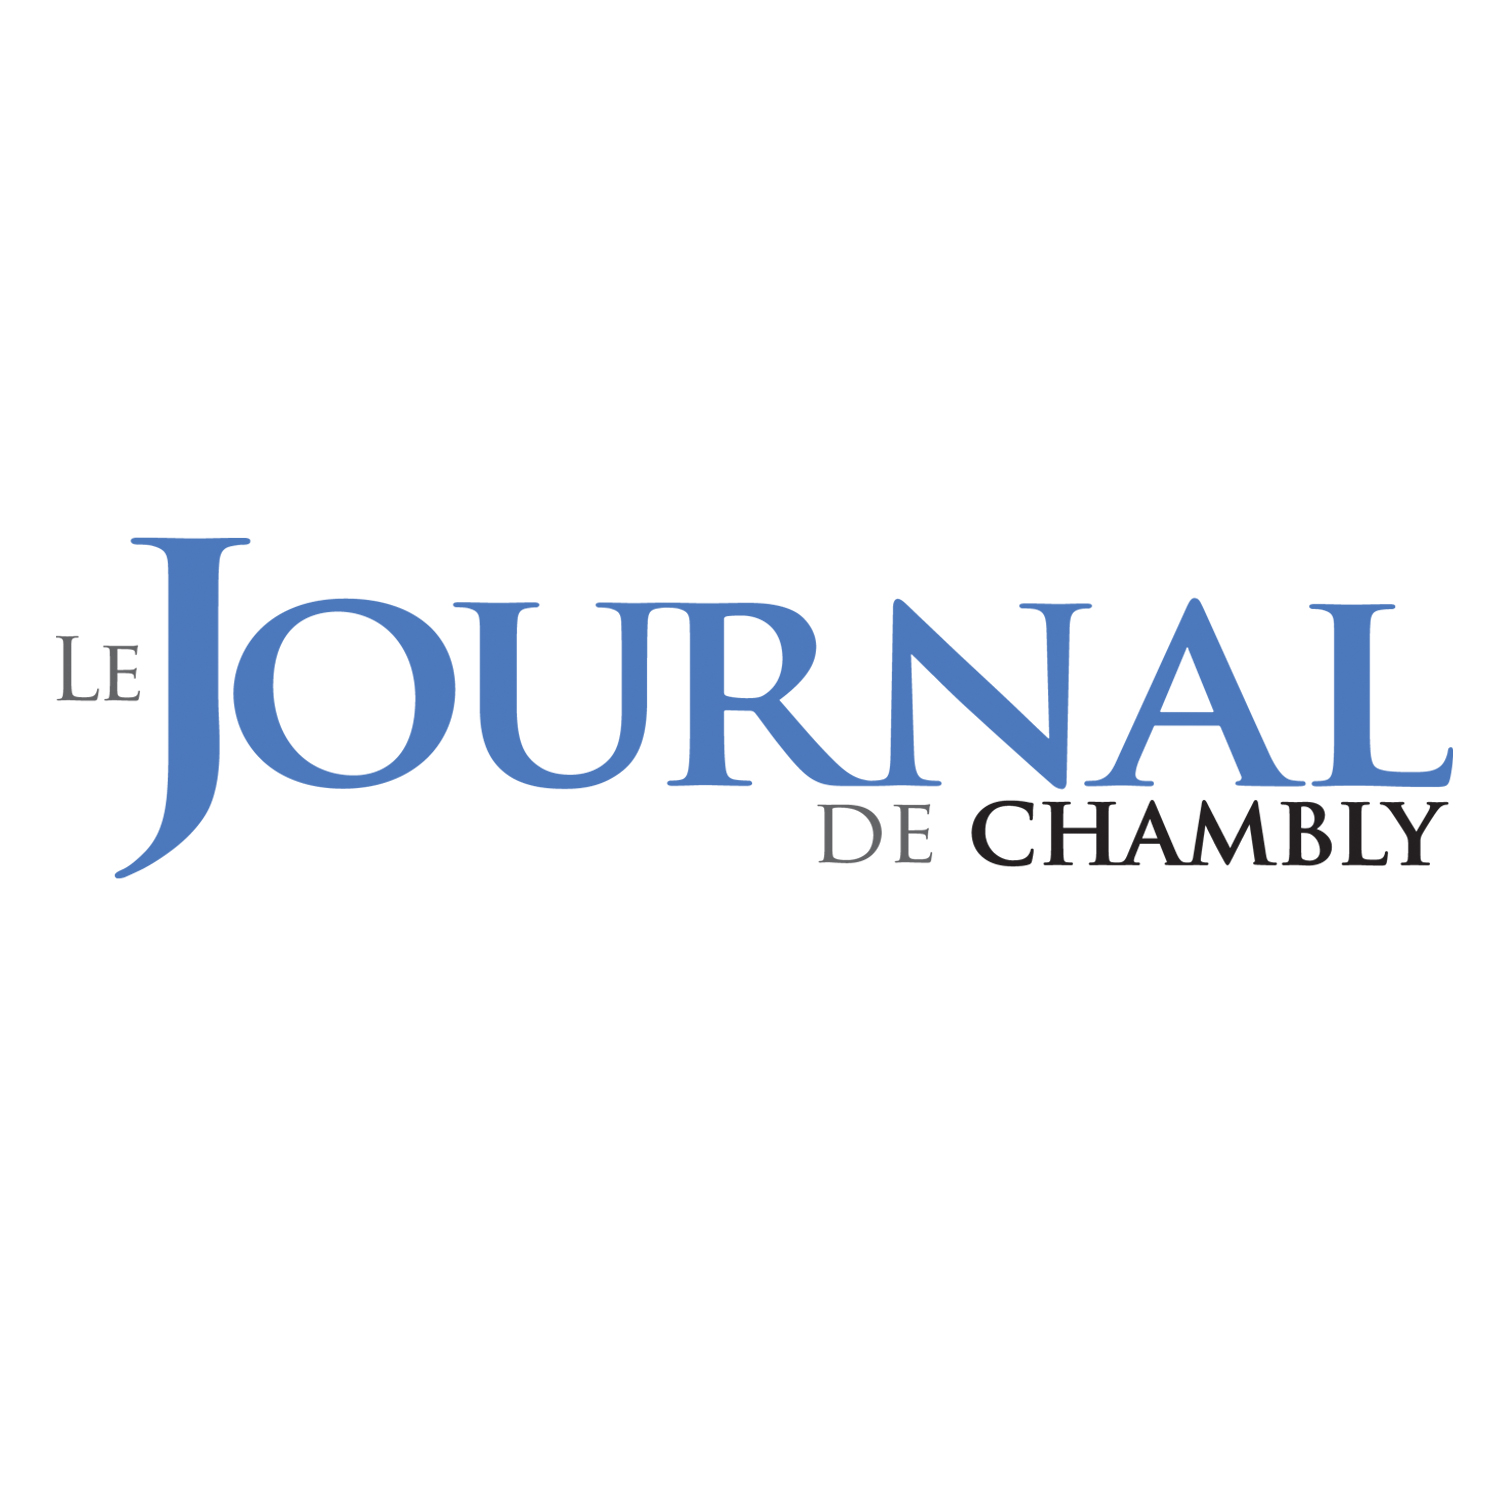 Le journal de Chambly